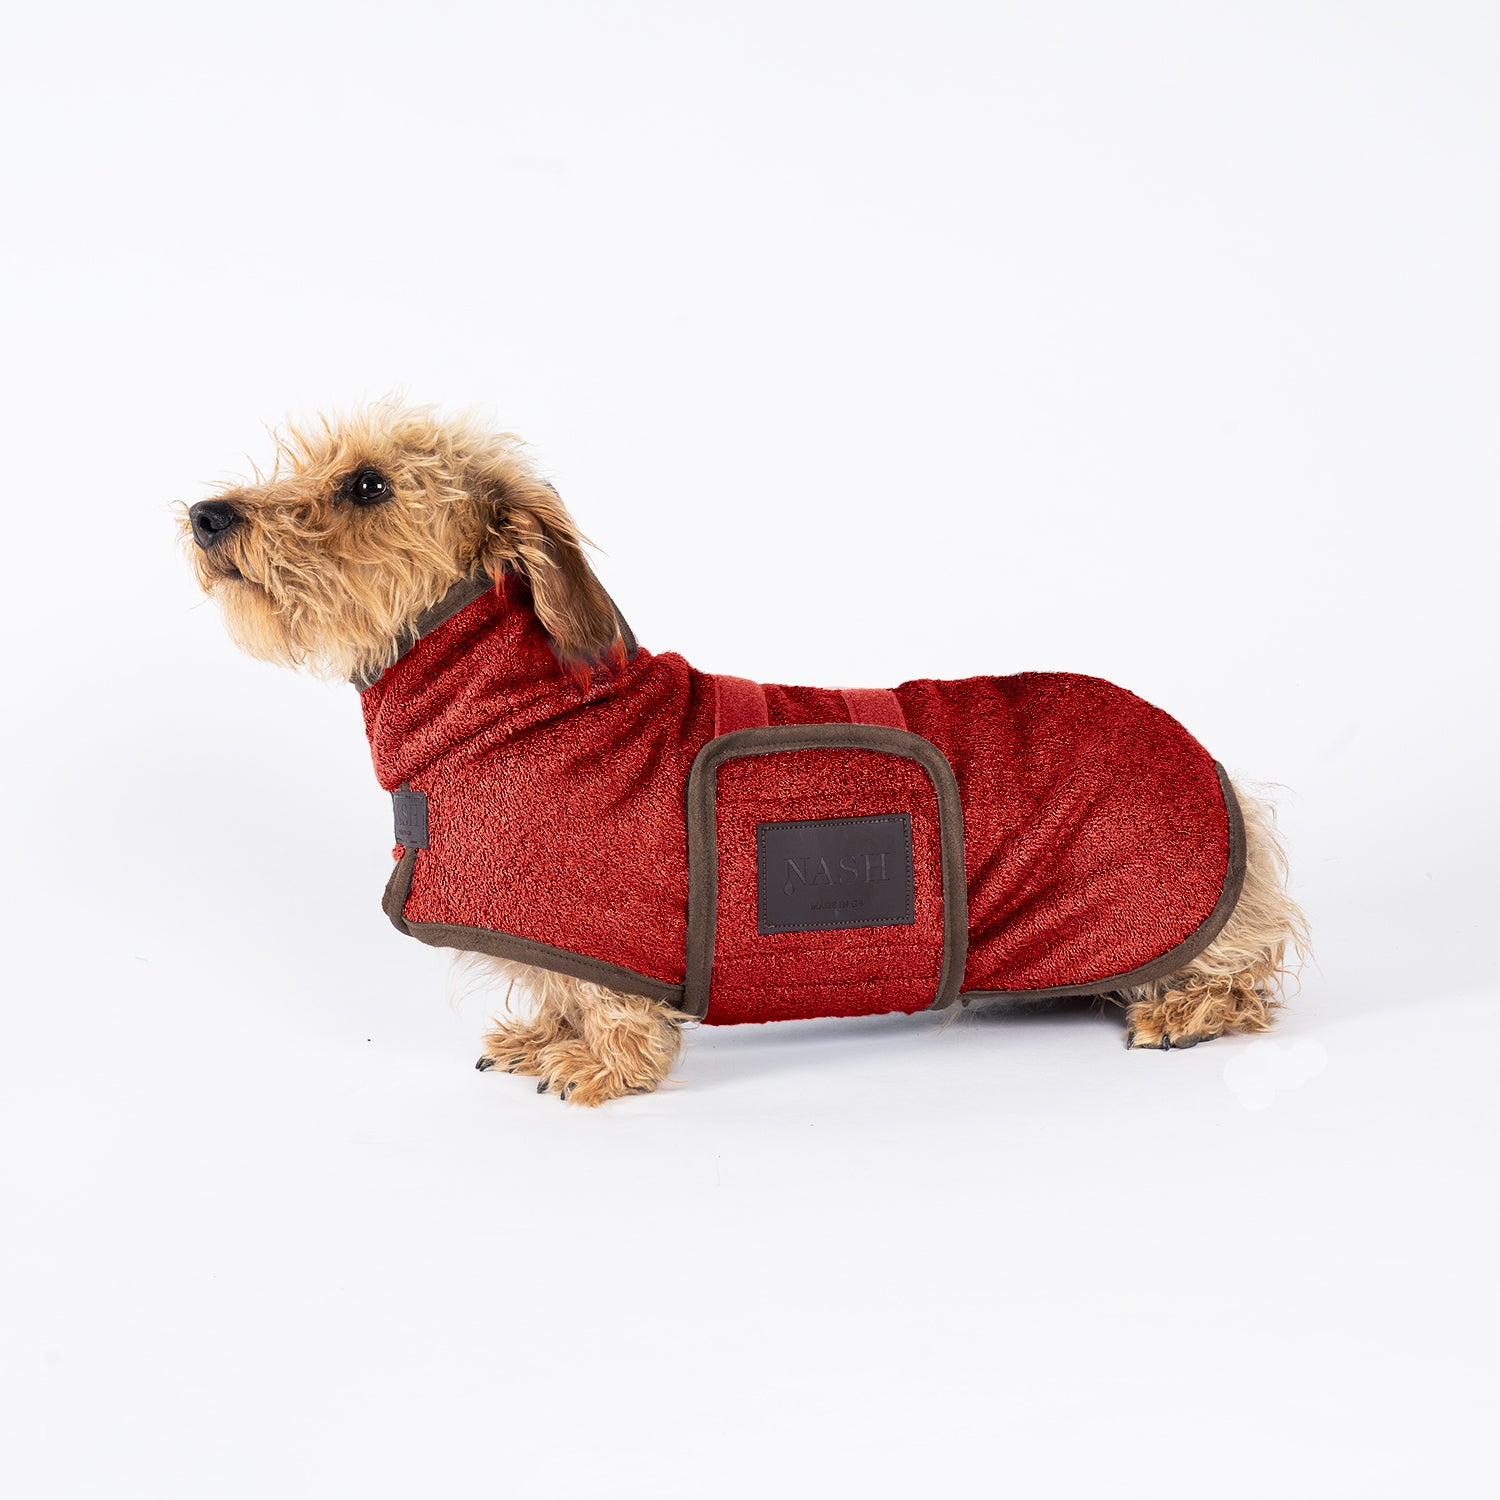 Bamboo Drying Coat - Red - Shop Bamboo Dog Drying Coats, bed covers, drying mitts & throw Online!